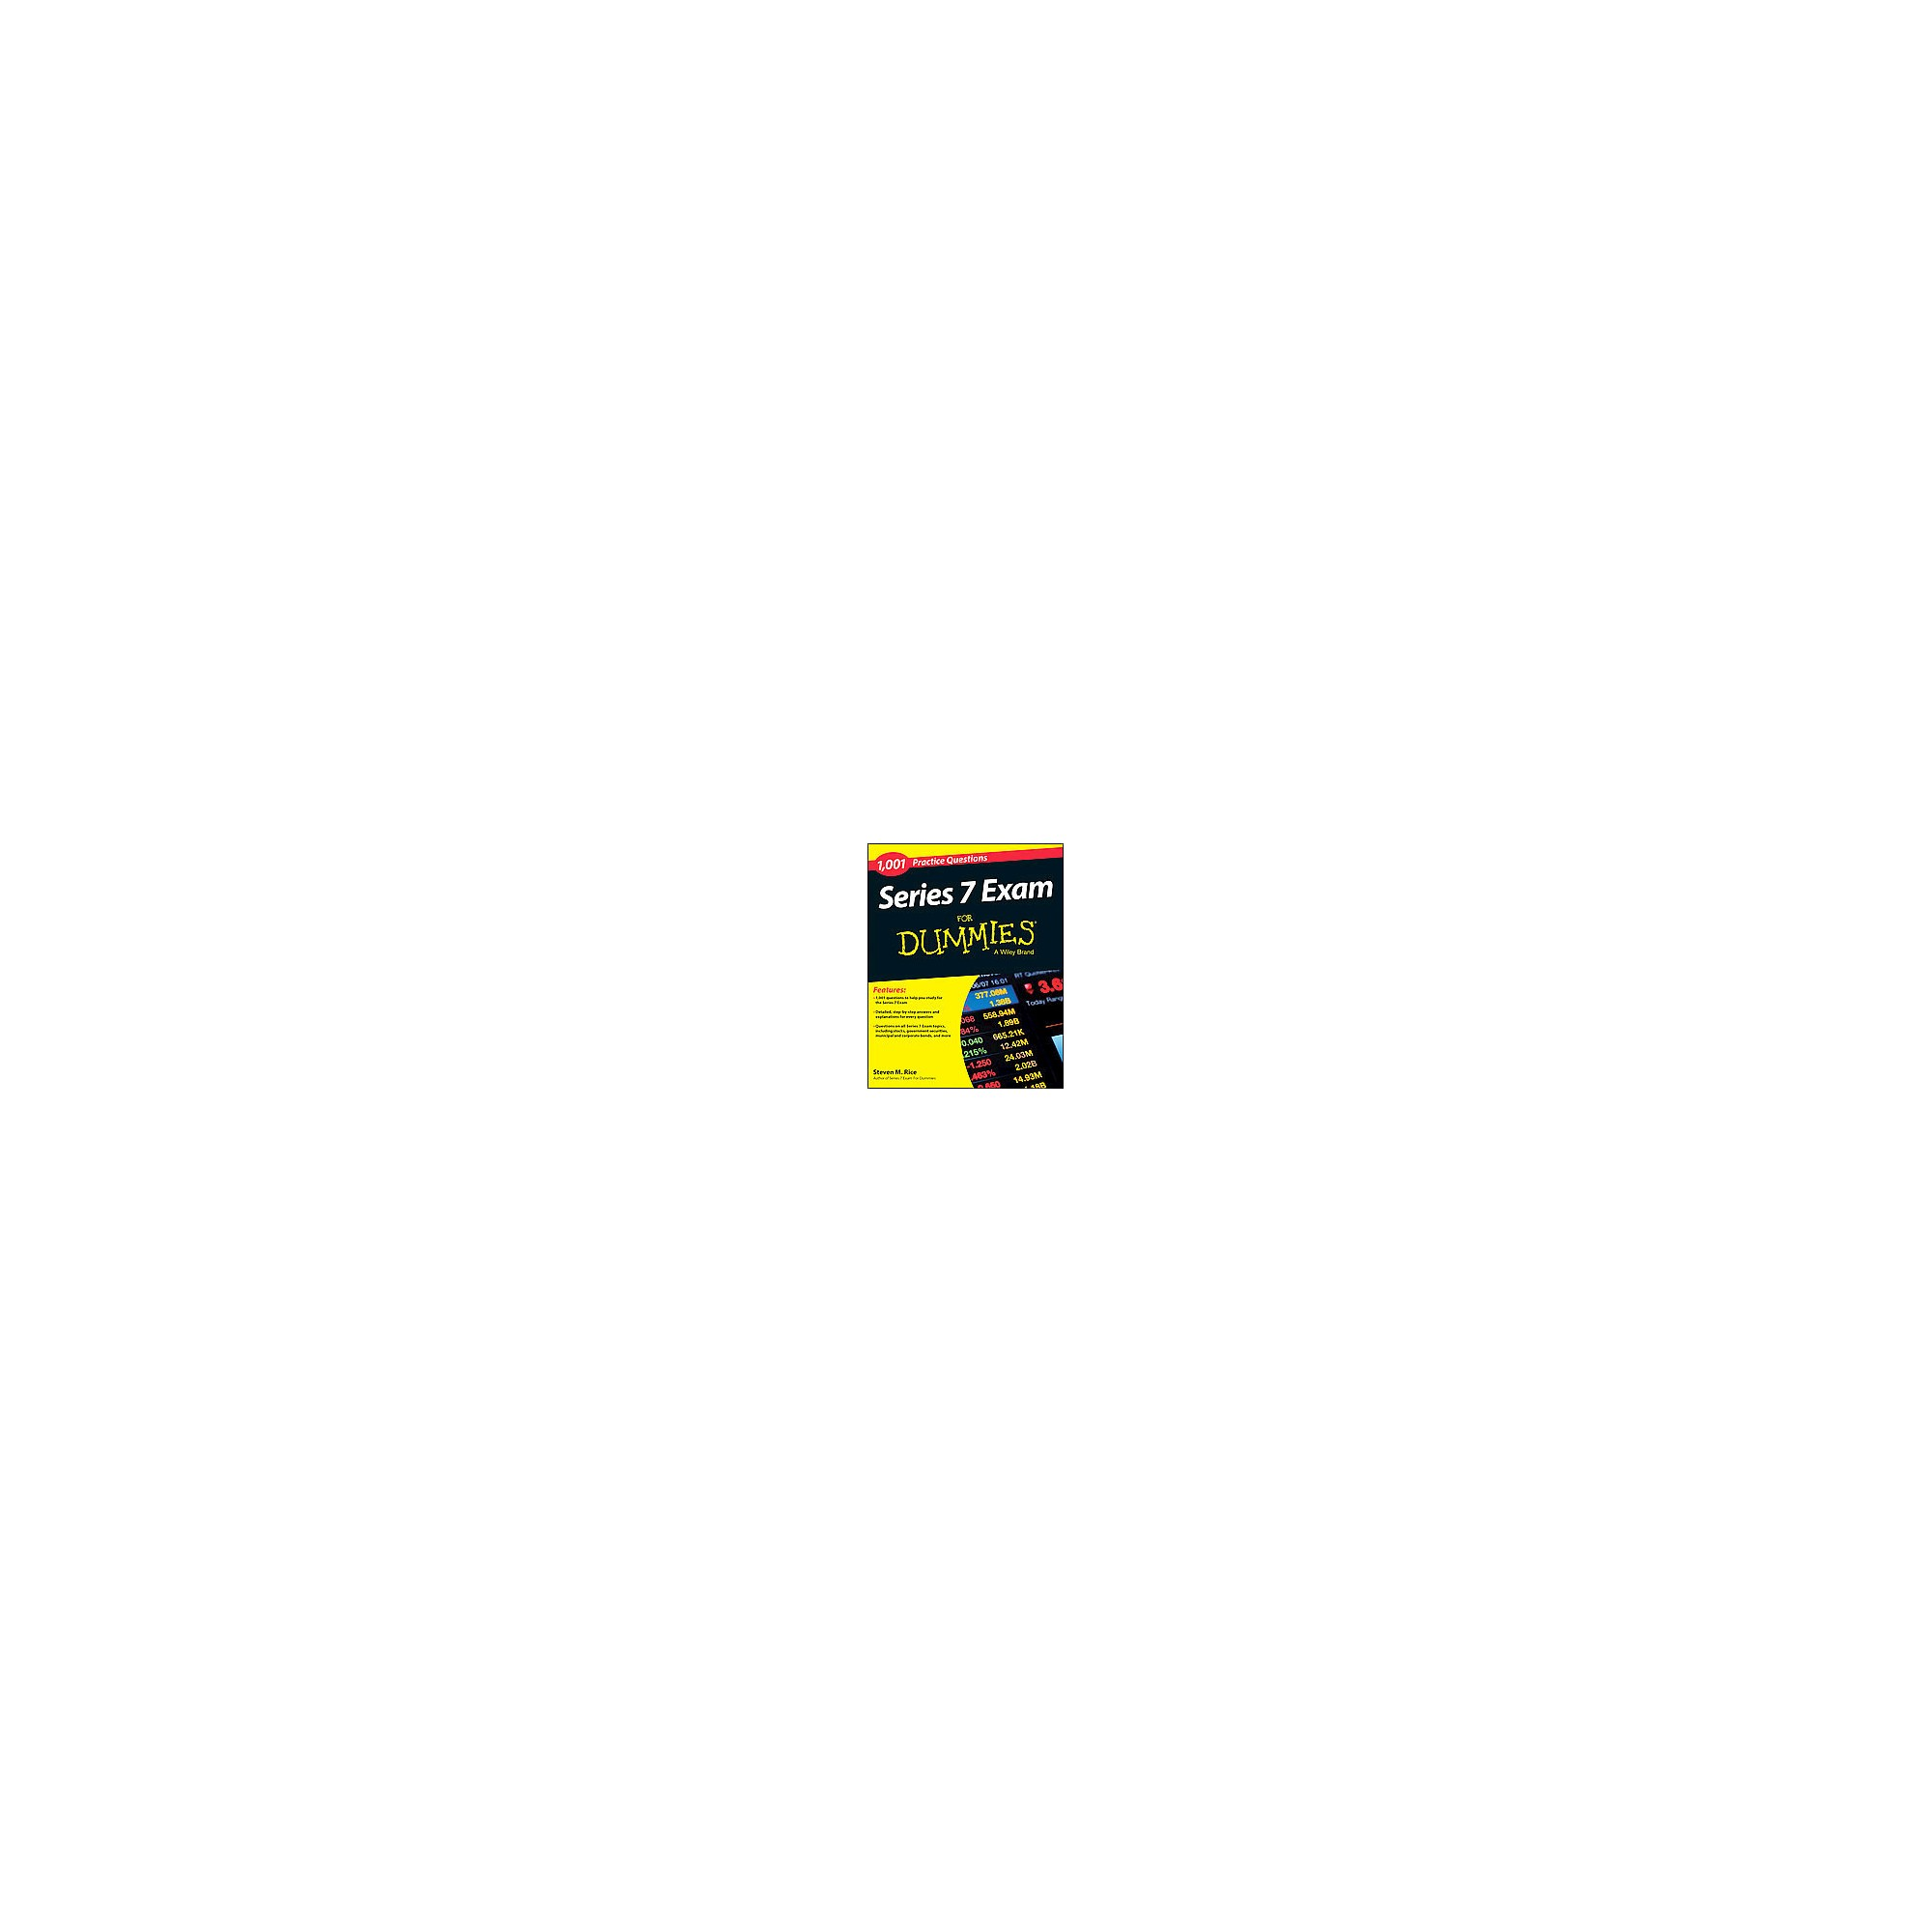 1,001 Series 7 Exam Practice Questions for Dummies (Paperback) (Steven M.  Rice)